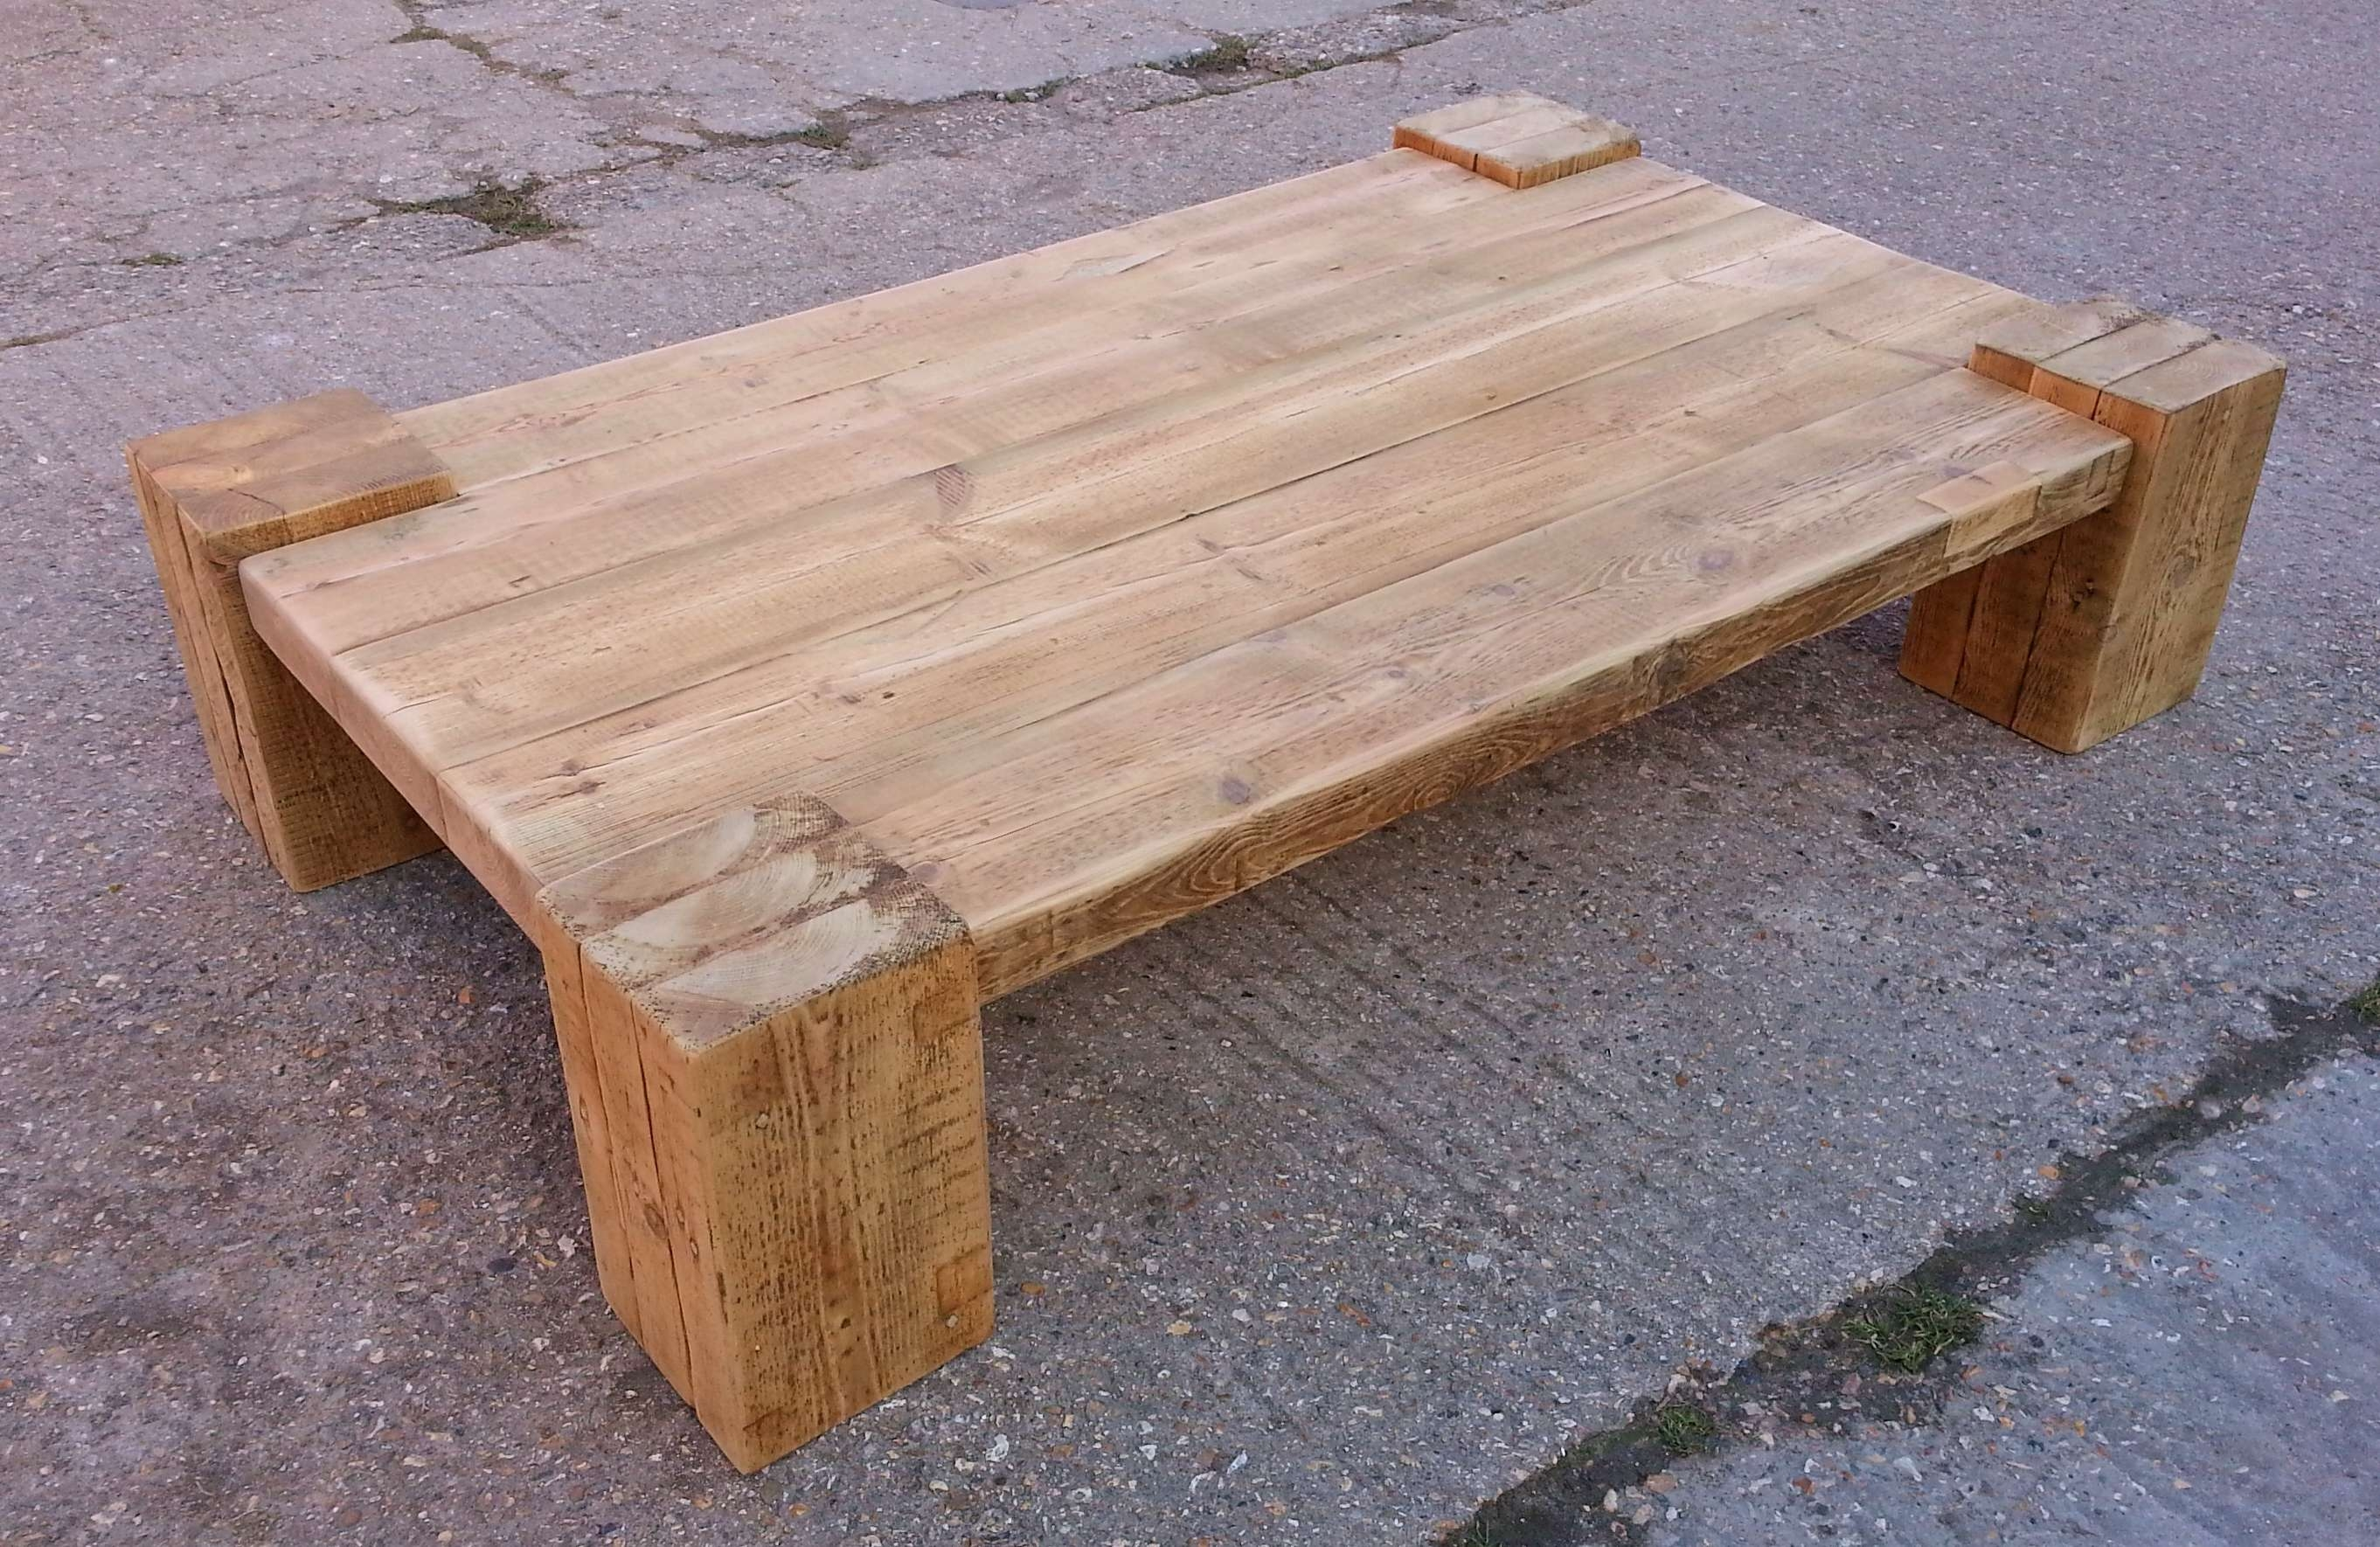 Favorite Chunky Coffee Tables Intended For Best Chunky Coffee Table With Drawers – 2X4 Coffee Table Plans (View 8 of 20)